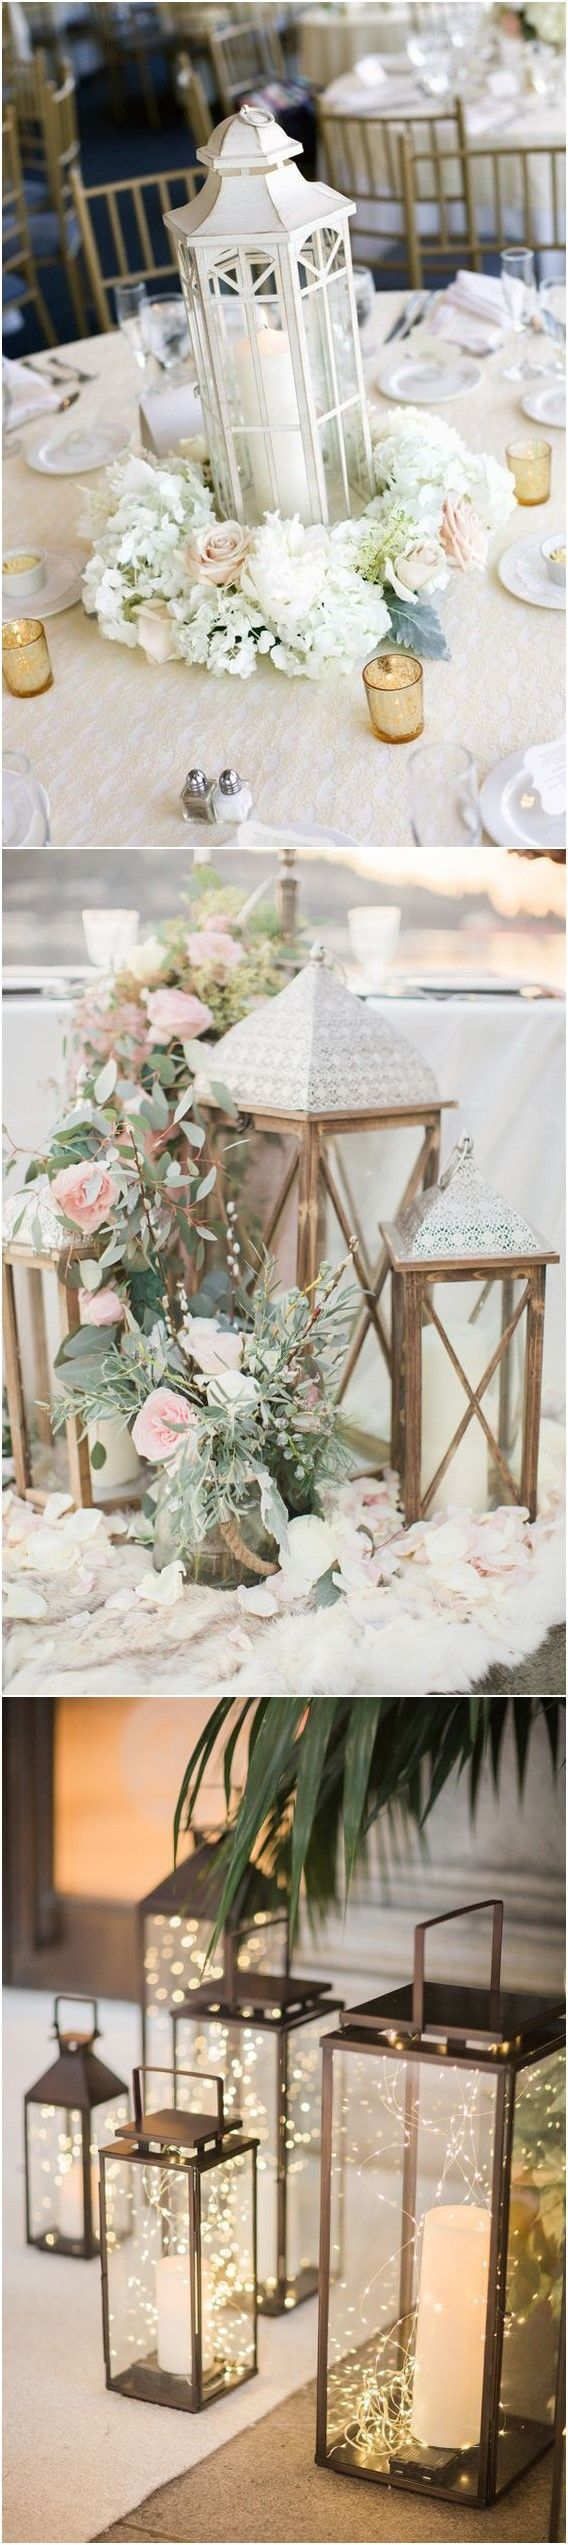 Wedding decorations country   Rustic Lantern Wedding Decoration Ideas to Light up Your Day